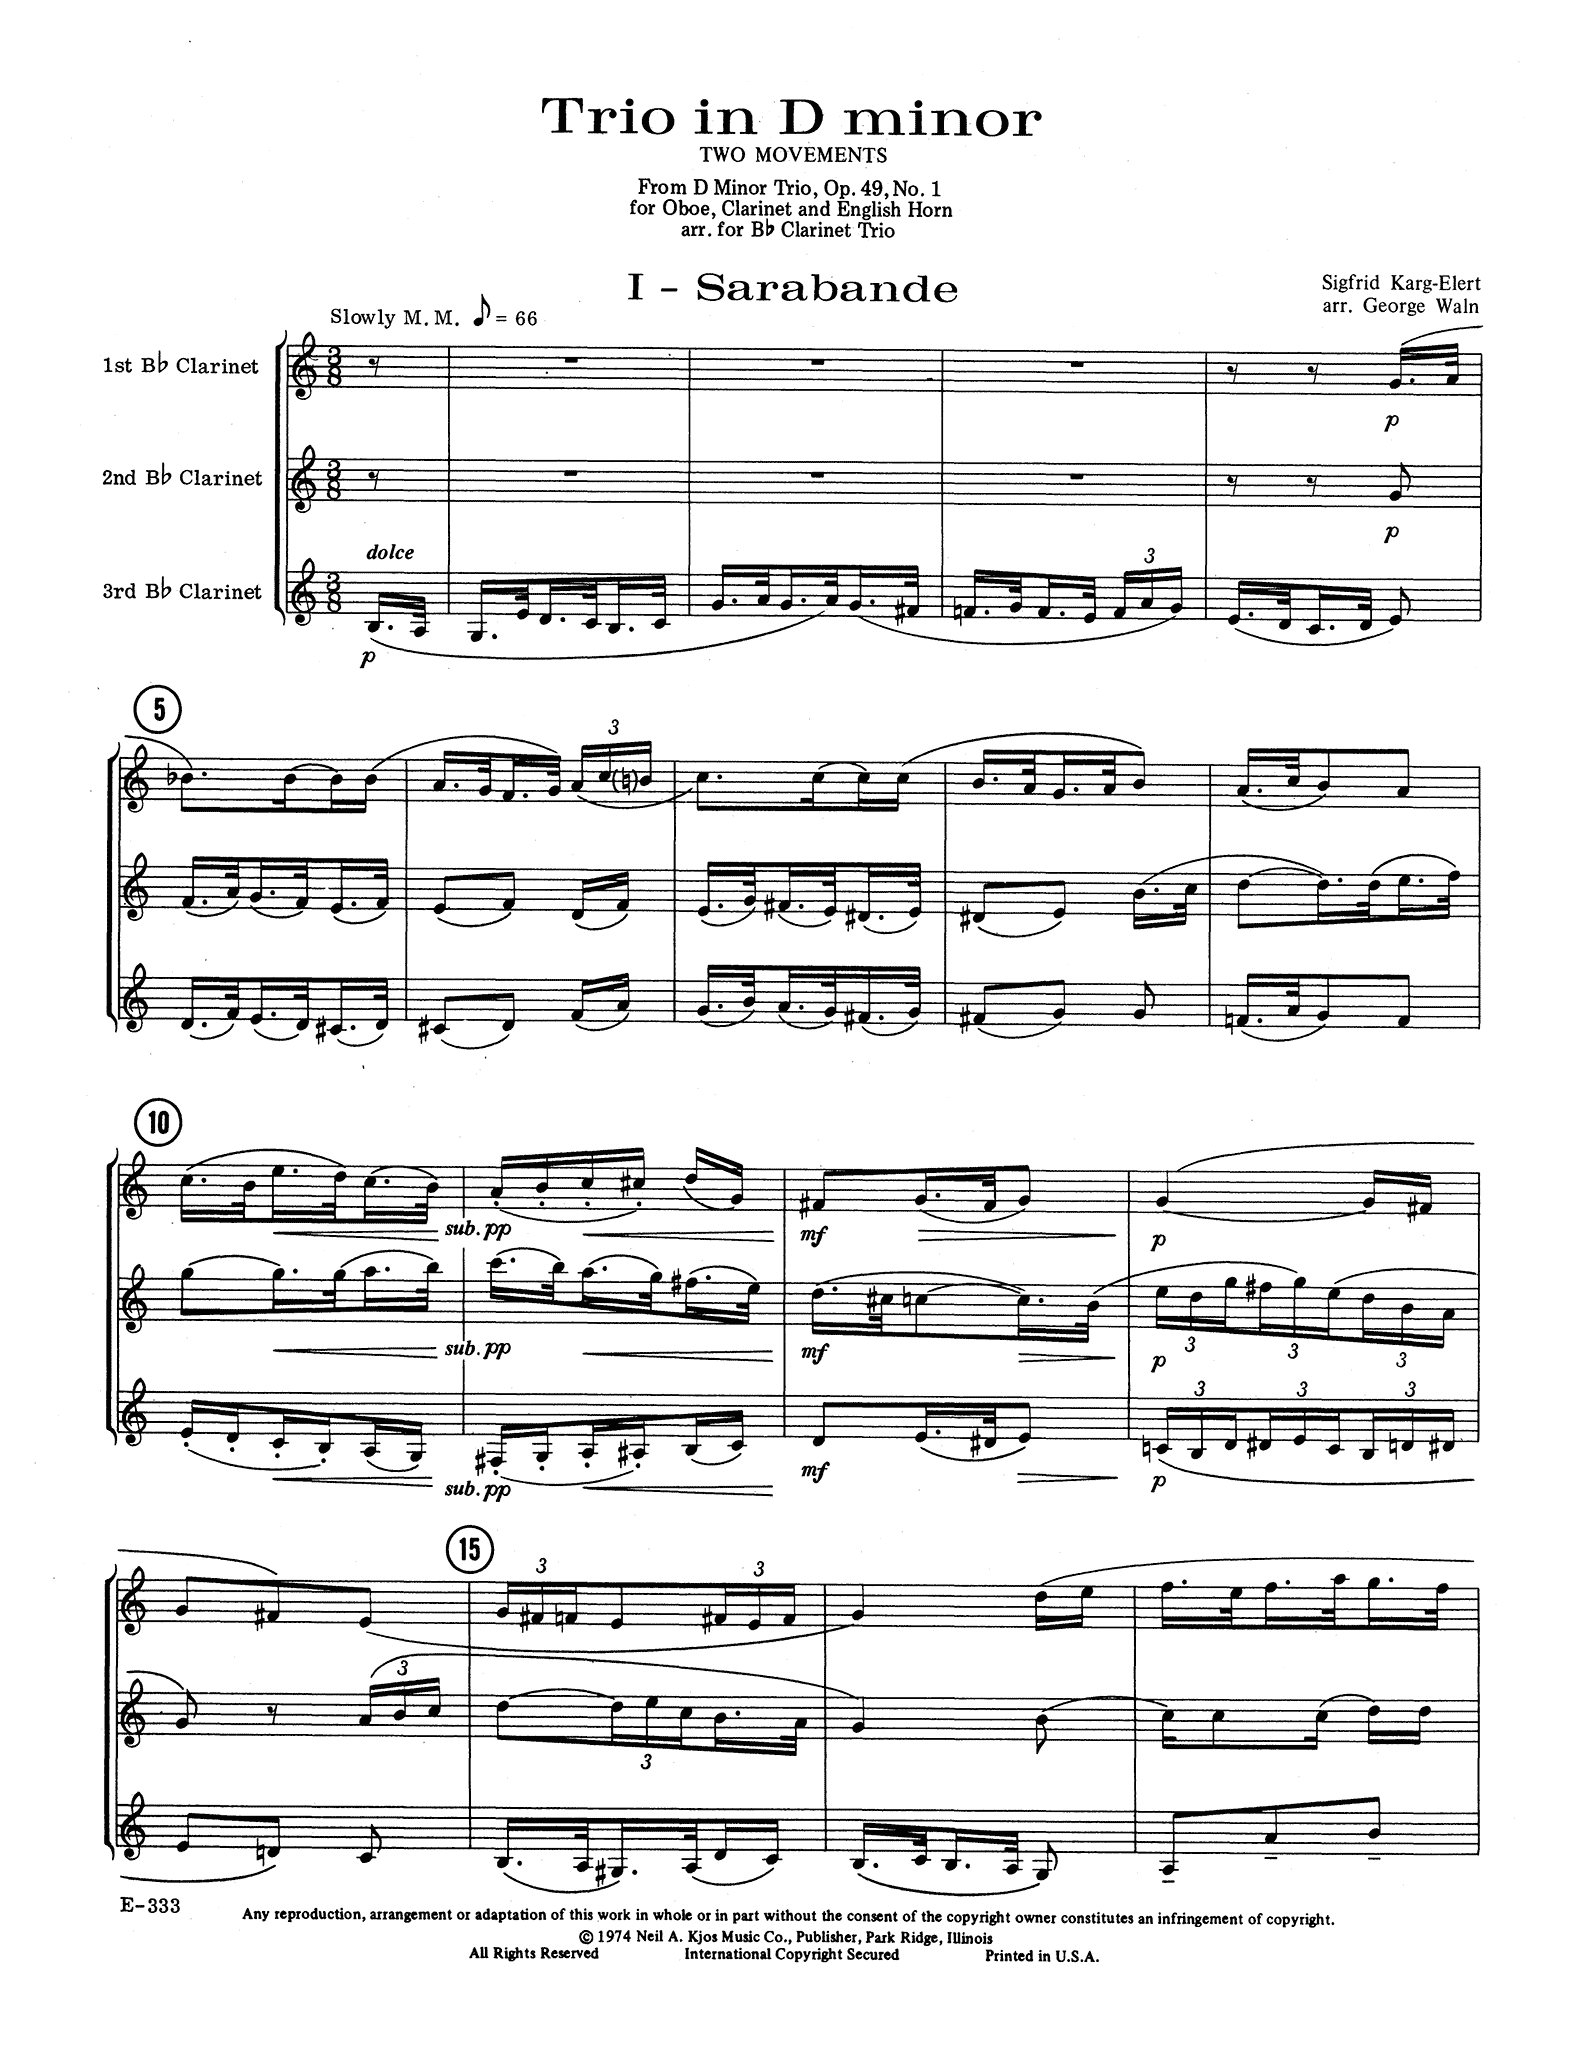 Two Movements from Trio in D Minor, Op. 49 No. 1 - Movement 1